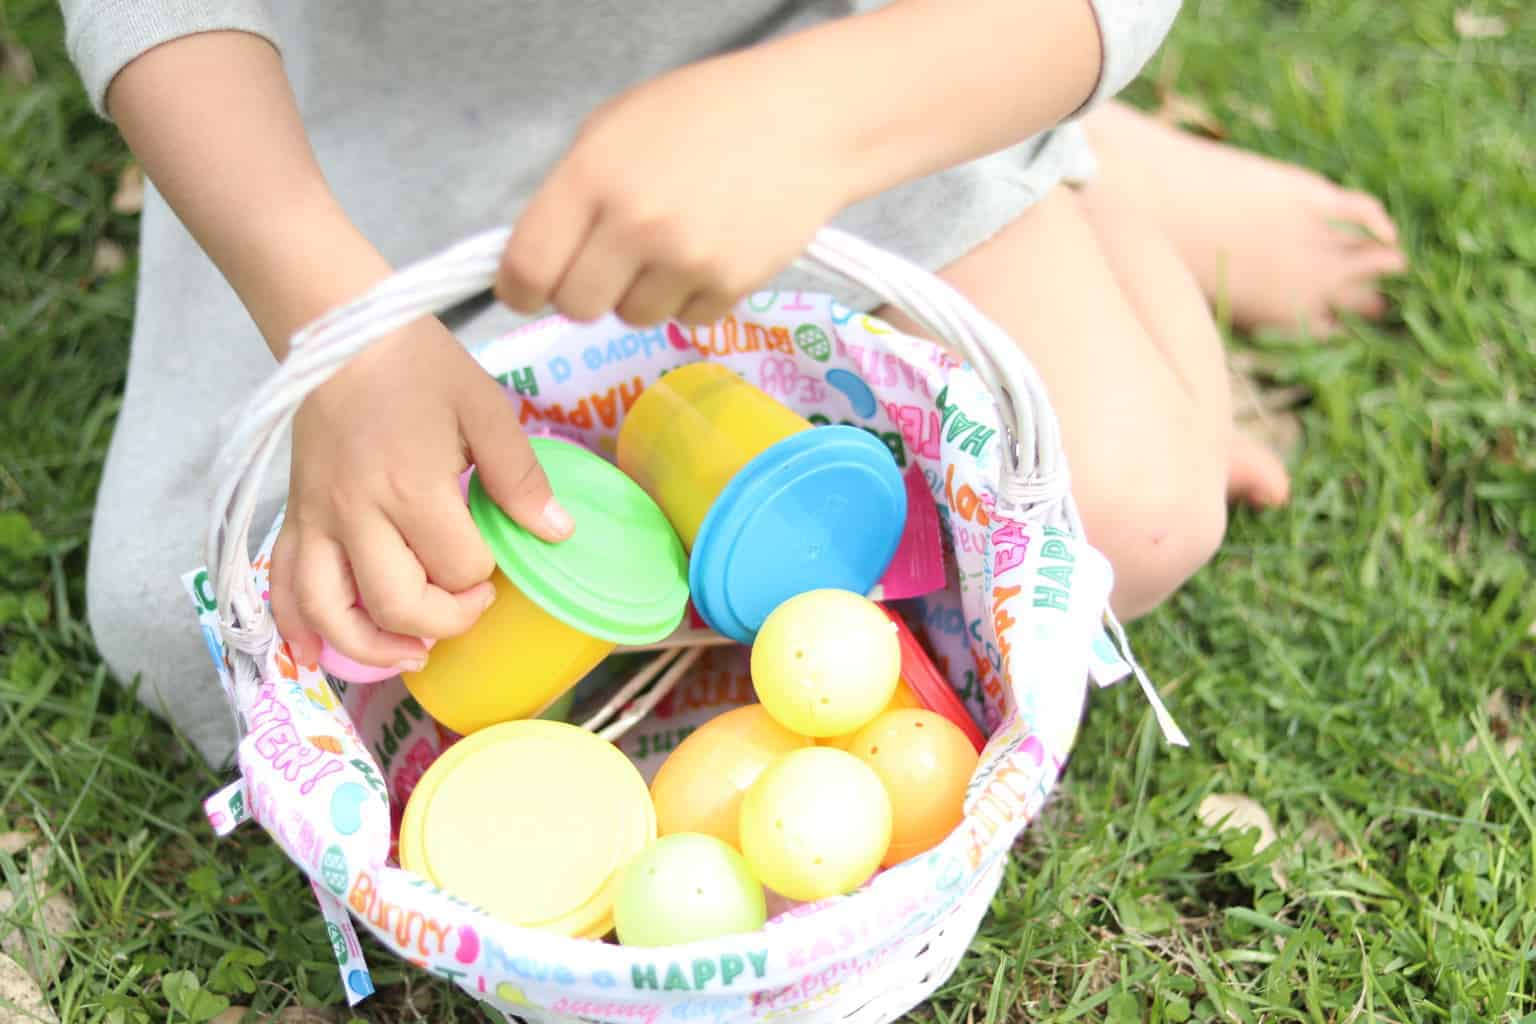 This year fill your kid's Easter basket with inexpensive toys, Lara Bars, fruit leather, and other healthy treats.